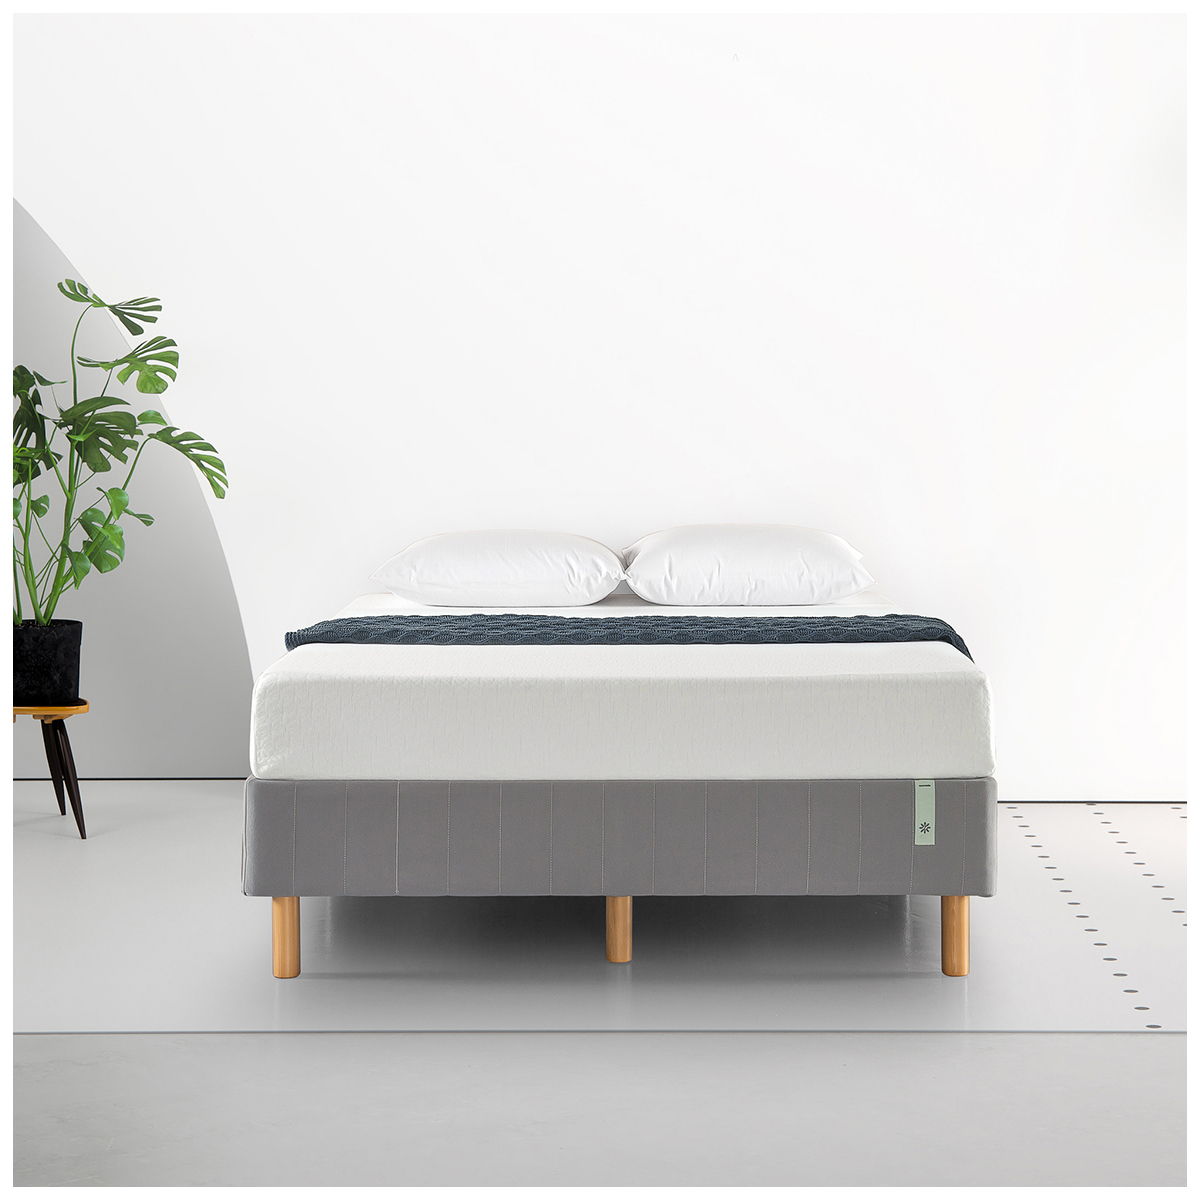 Blackstone Standing Smart Box Spring Double Bed Base Grey image 6